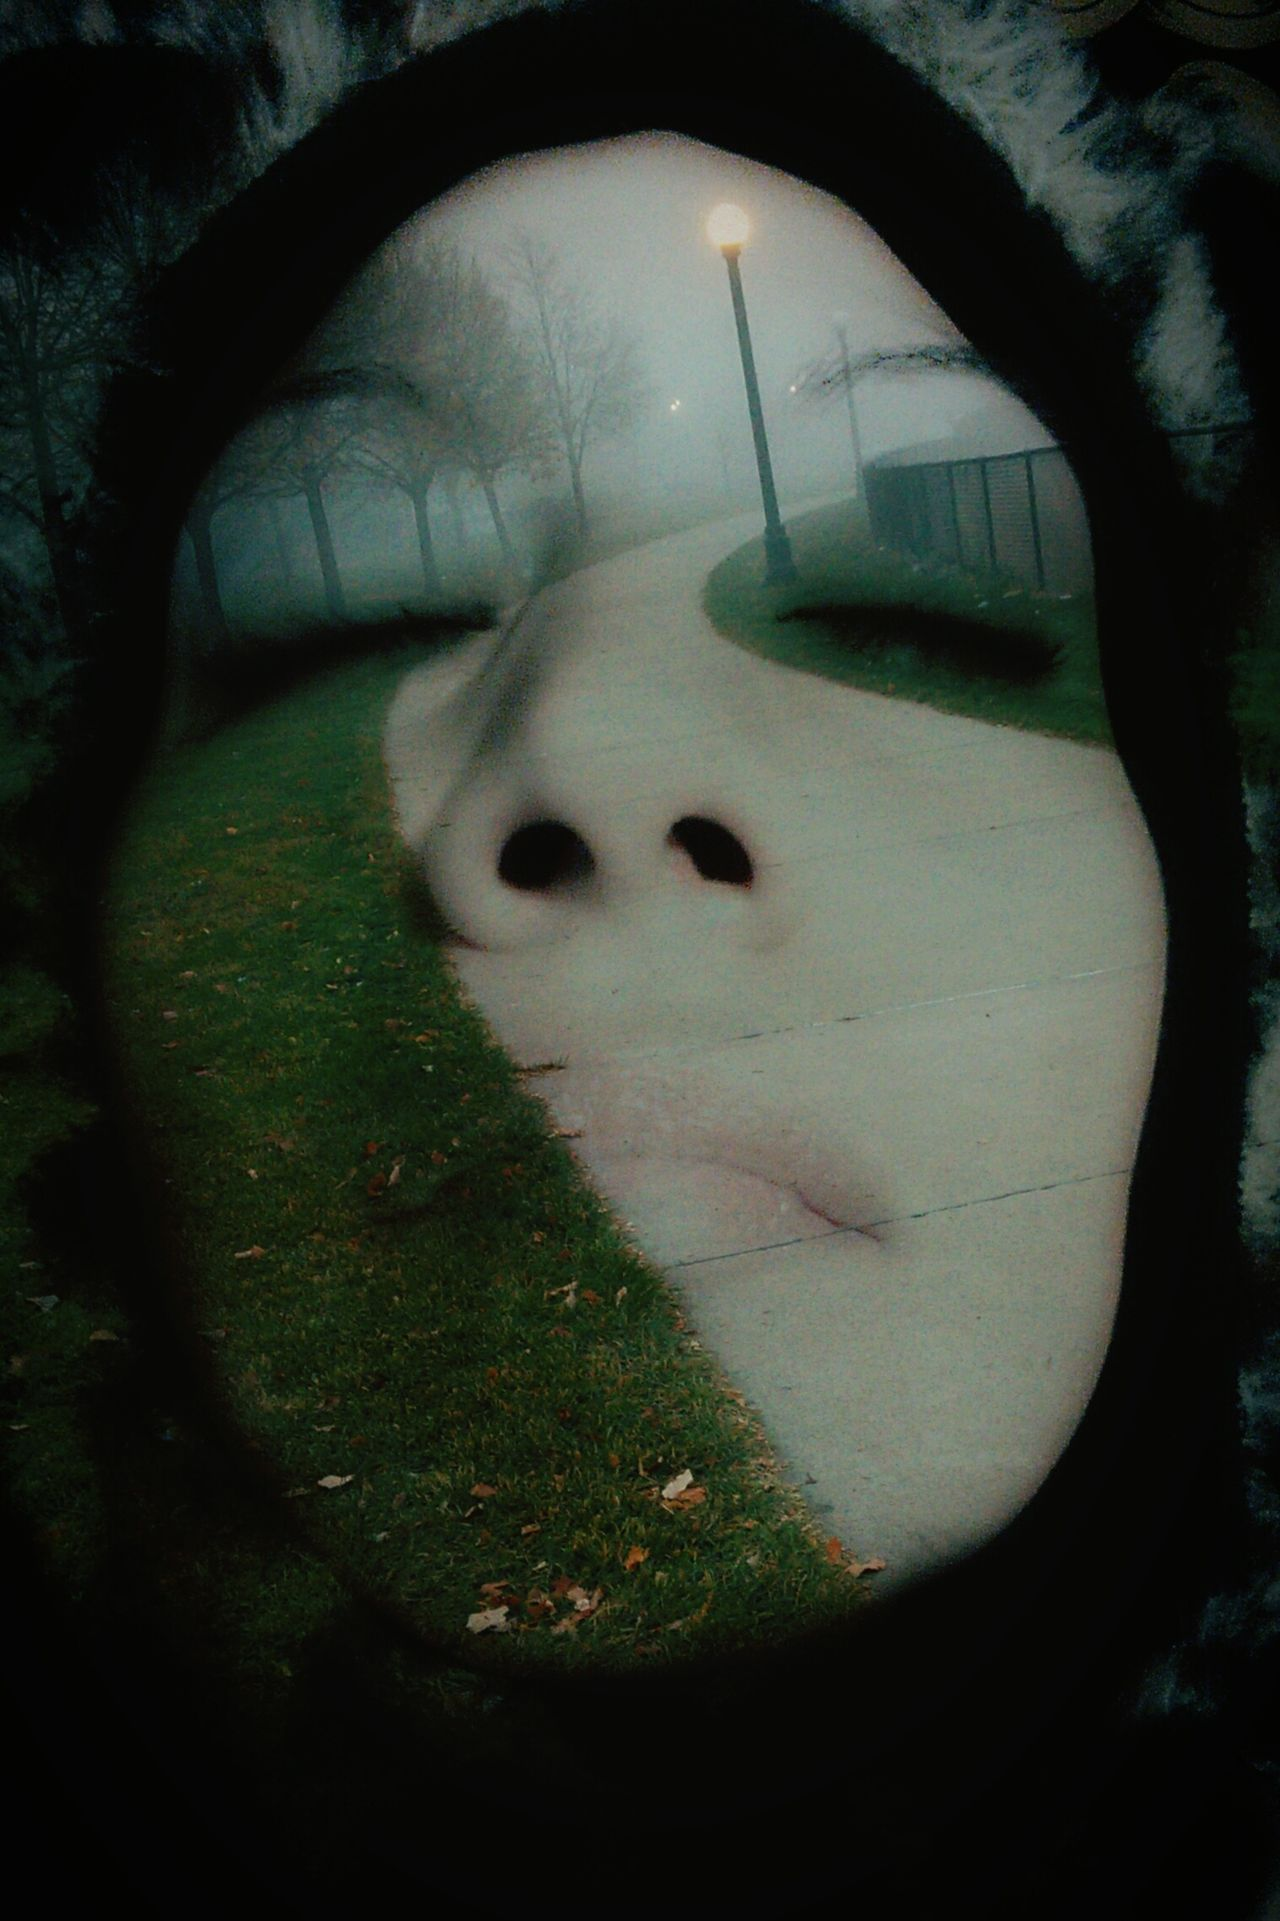 One Person Real People Human Body Part Close-up Lifestyles Double Exposure People Abstract Photography Gothic Beauty  Weather Photography Lane Sidewalk Vanishing Point Vertical Treeline Landscape Looking Up Layered Landscape Self Me Portrait Of A Woman Faces Of EyeEm